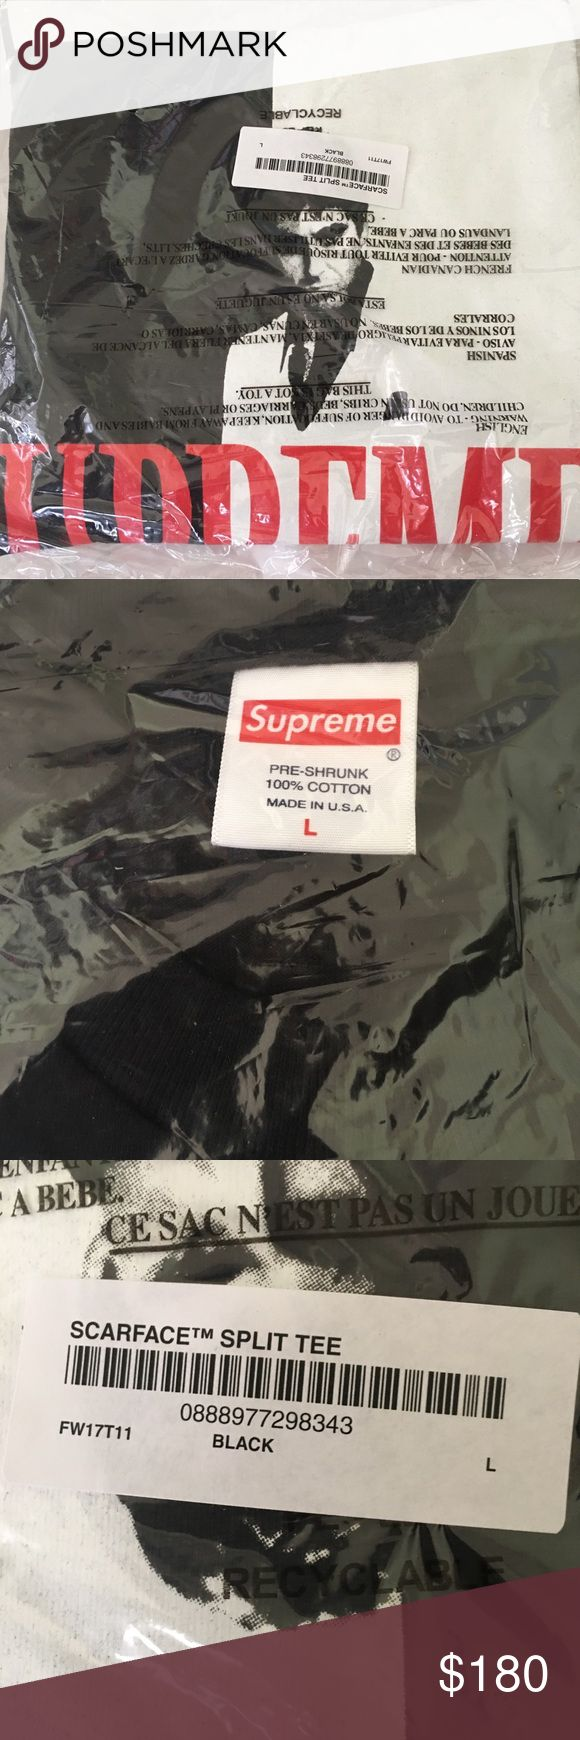 """Supreme """"Scarface"""" Split Tee Brand New(sealed), one of the popular colors! Supreme Shirts Tees - Short Sleeve"""